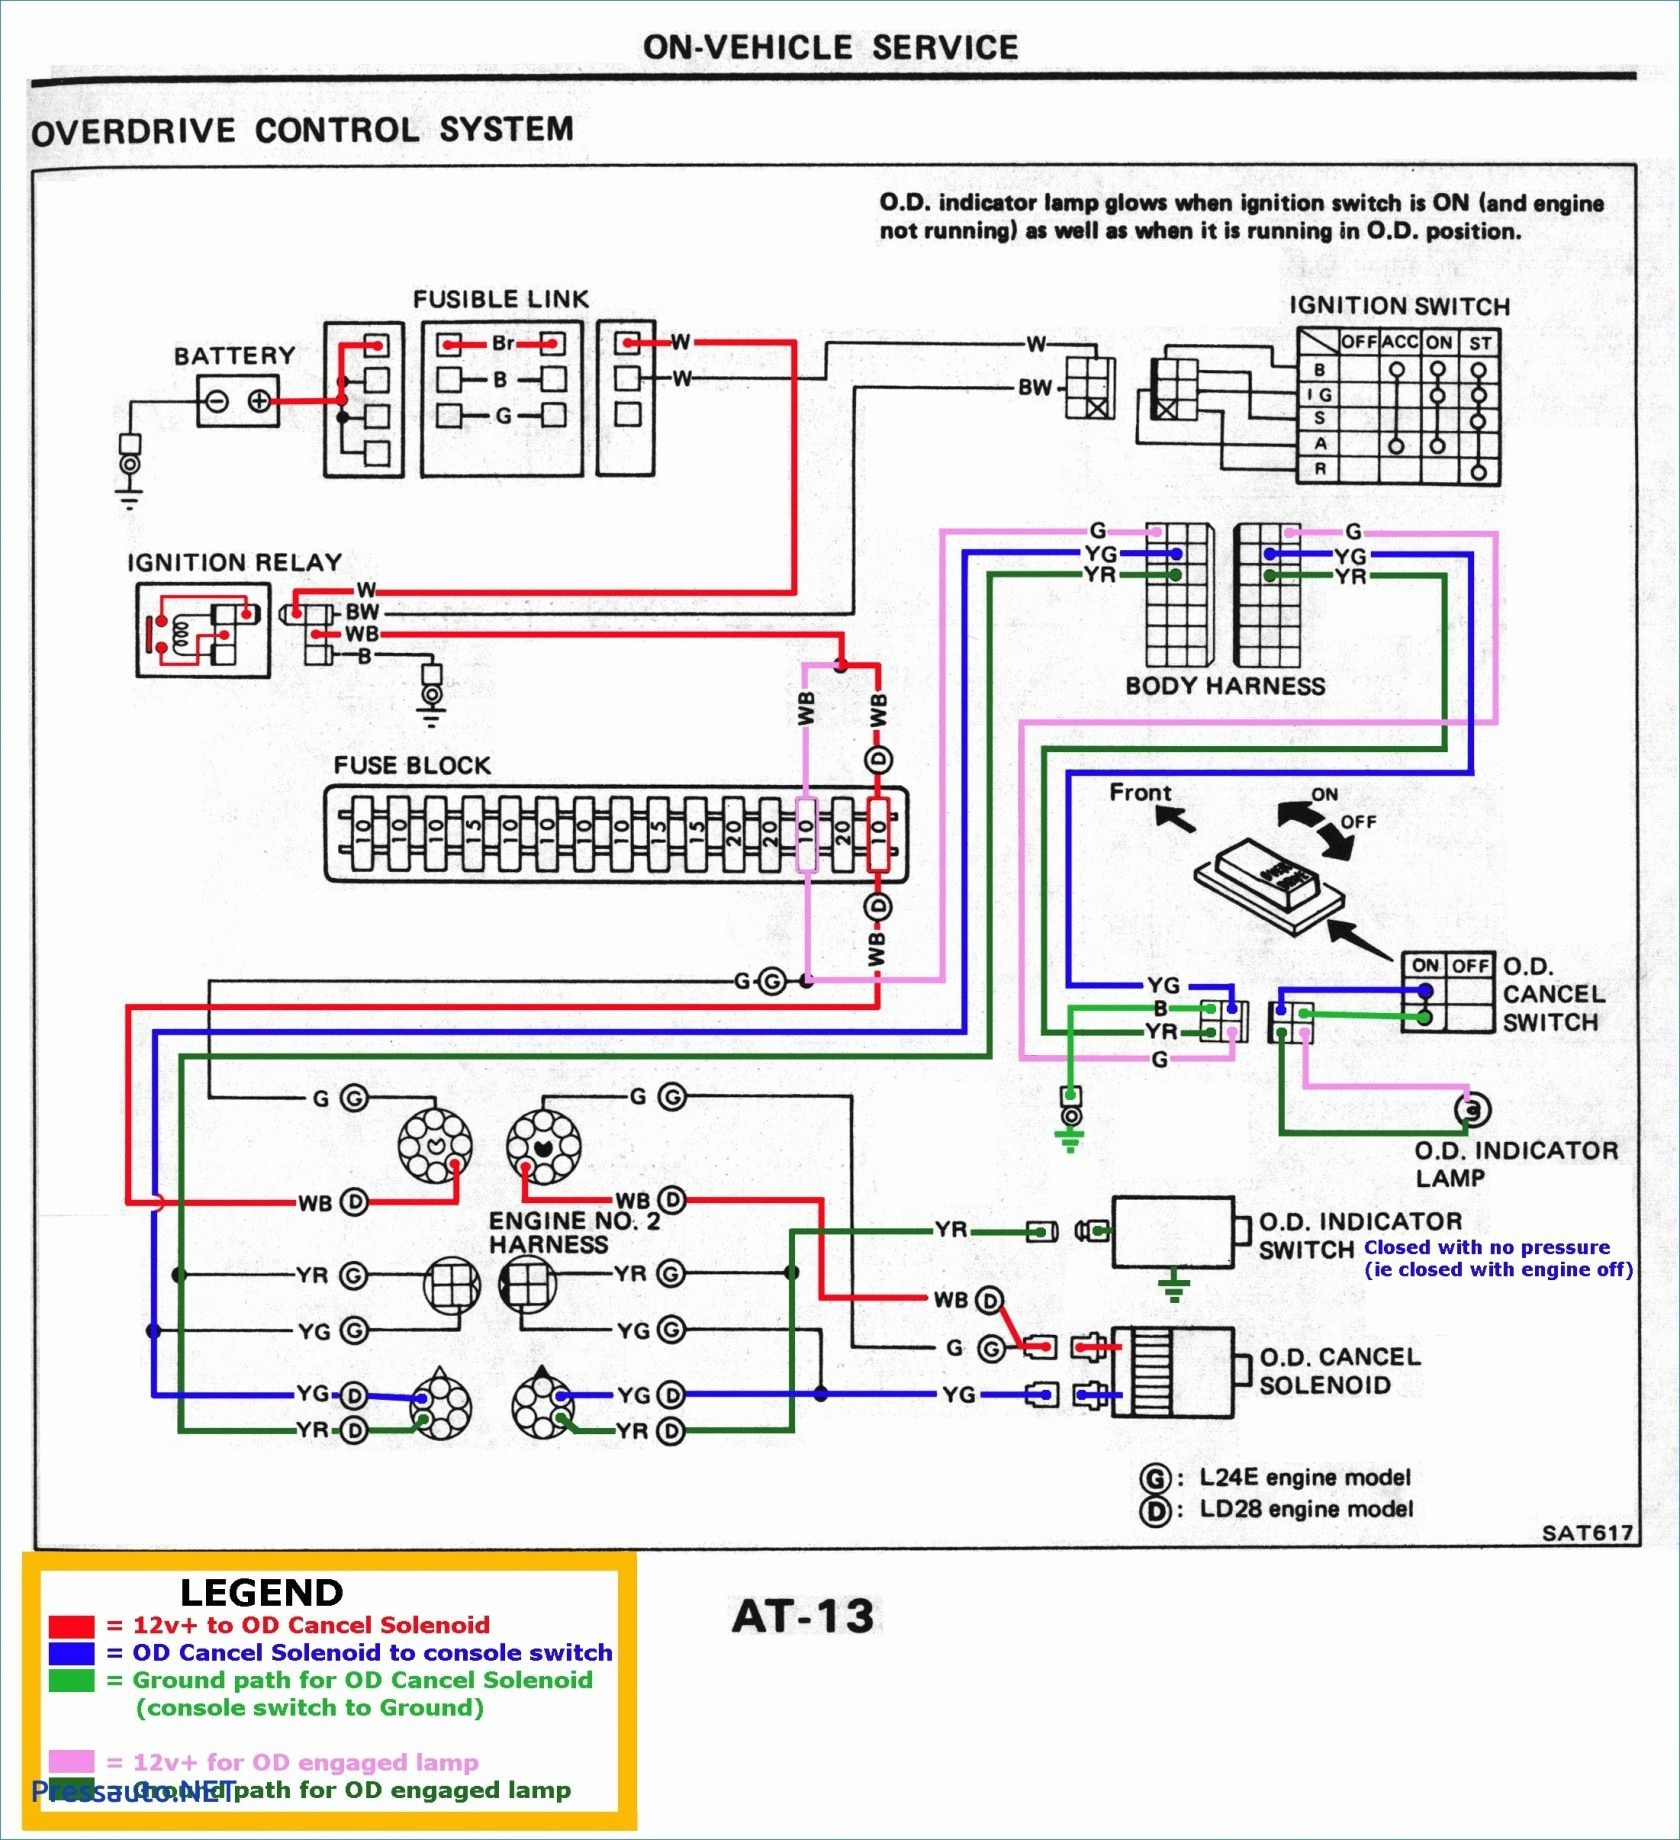 wiring diagram for murray riding lawn mower solenoid free wiring rh ricardolevinsmorales com murray lawn mower wiring diagram murray lawn mower solenoid wiring diagram